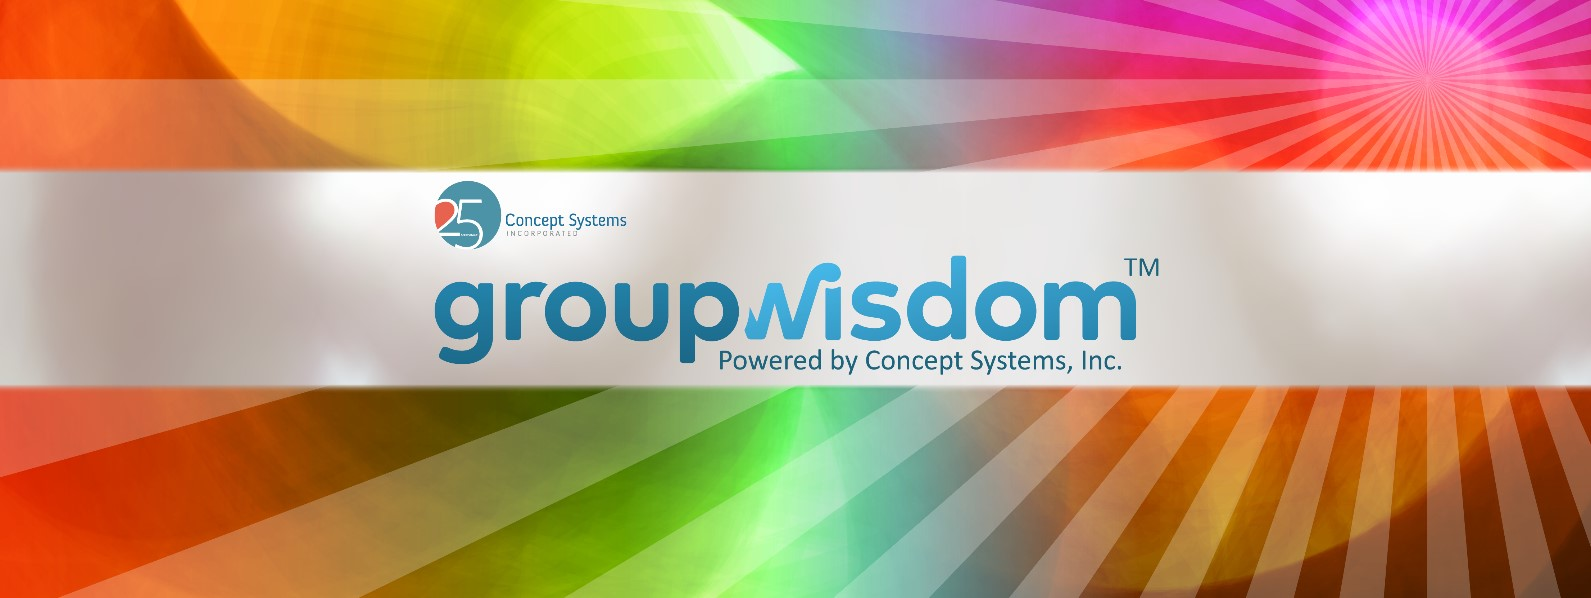 groupwisdom launch banner